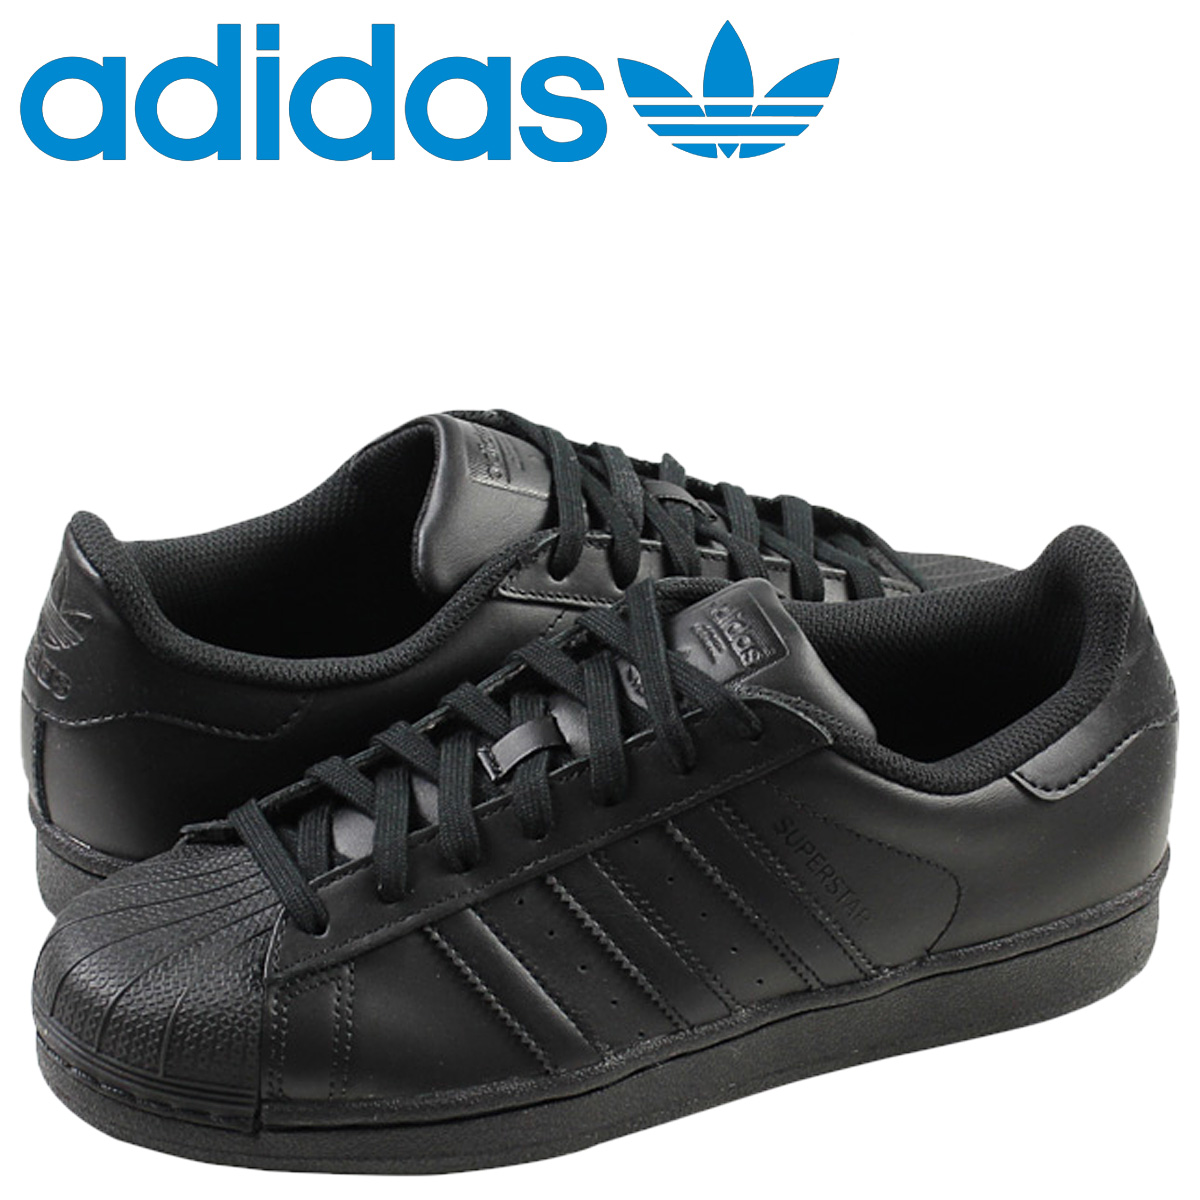 new arrival 016d7 c0ba2 adidas  ☆ SUPERSTAR FOUNDATION ☆. BLACK CORE ...